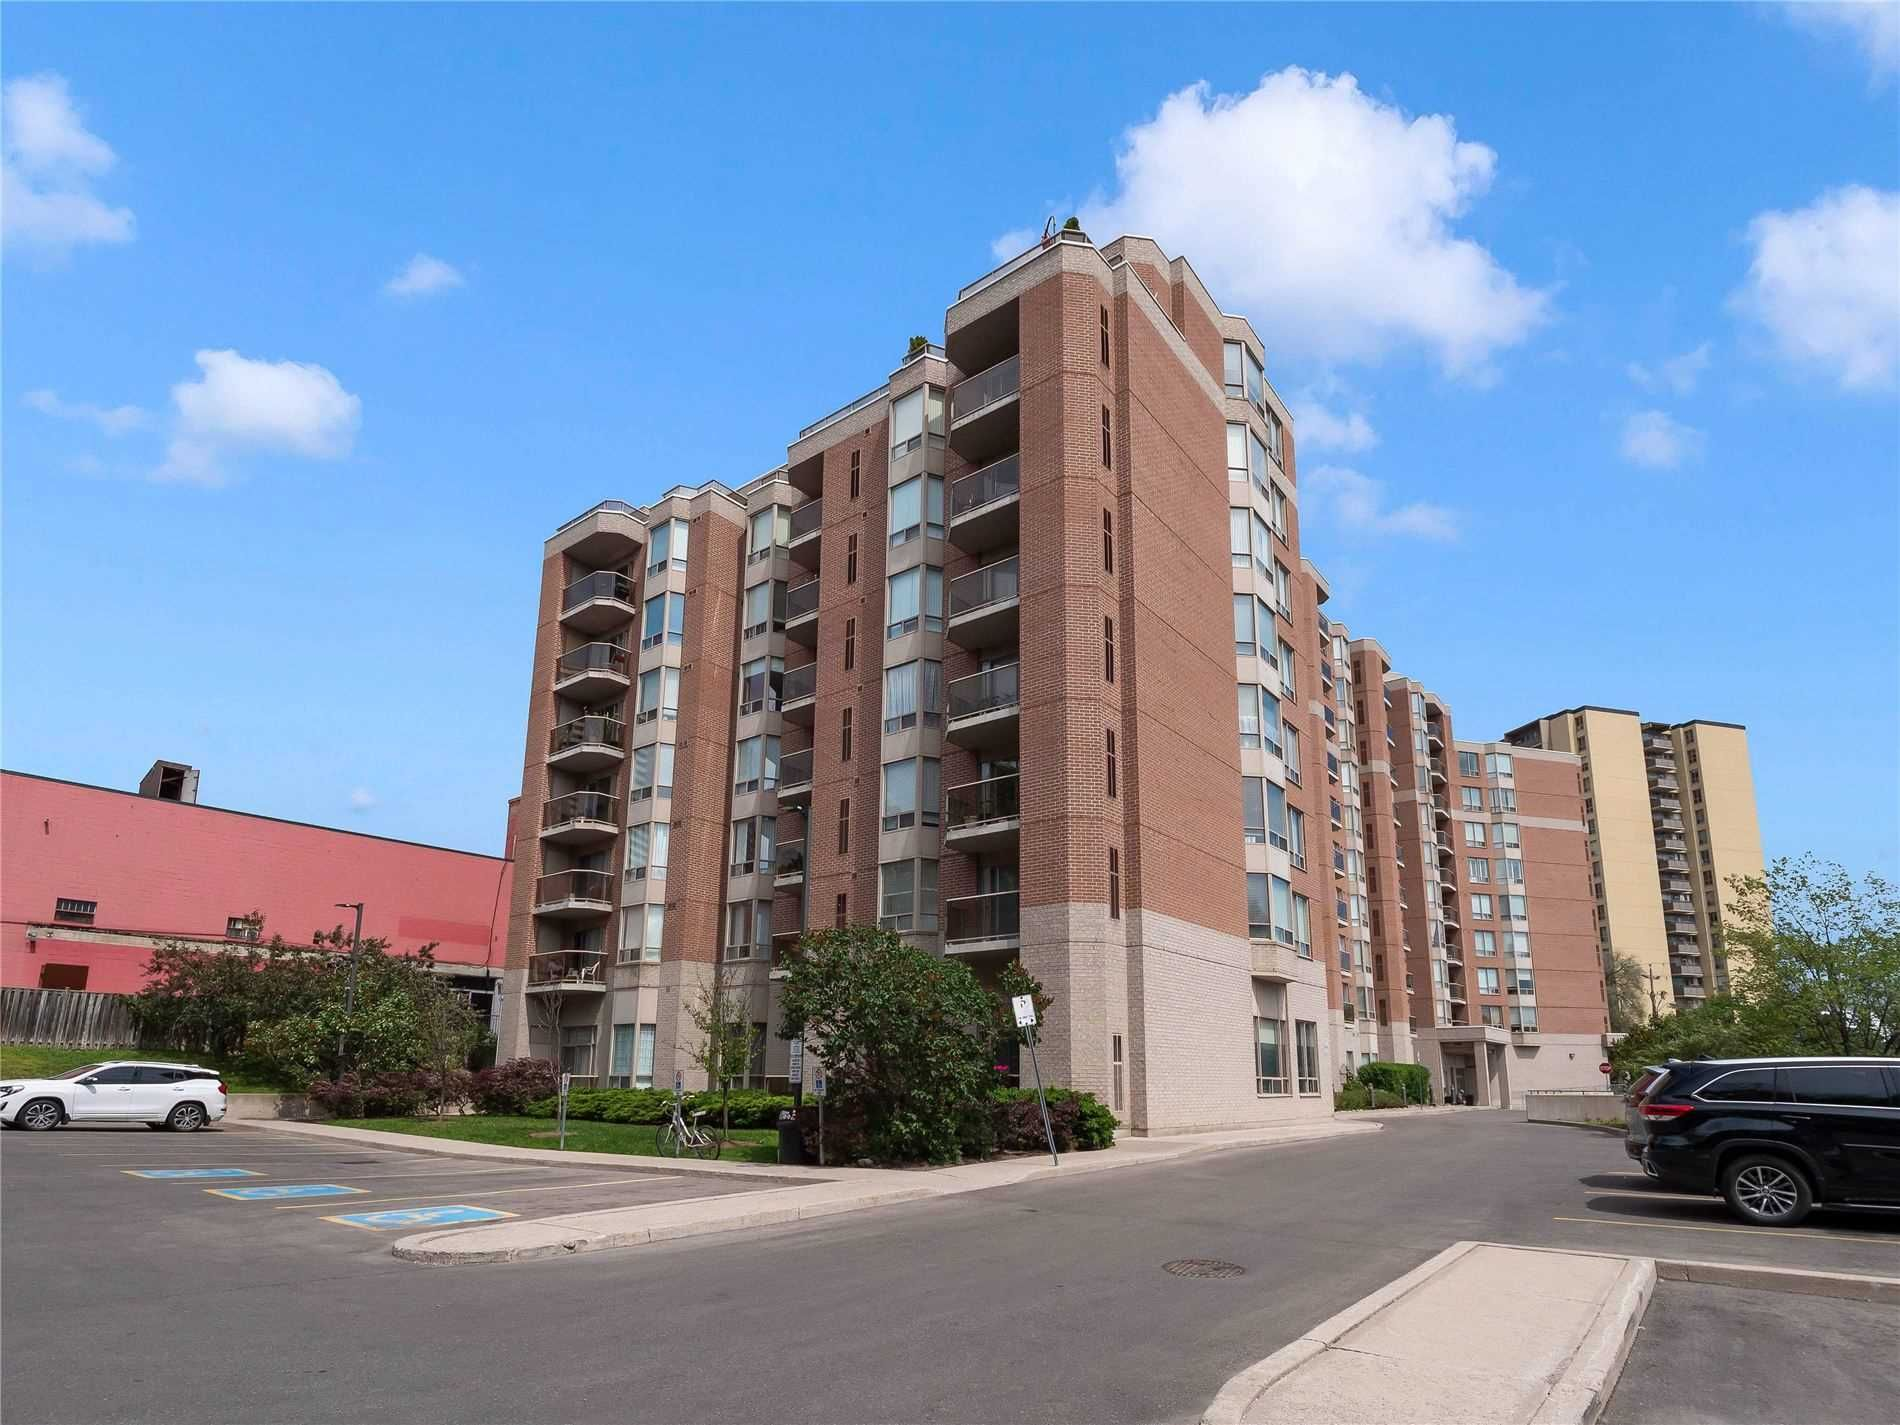 2088 Lawrence Ave W, unit 411 for sale in Toronto - image #1